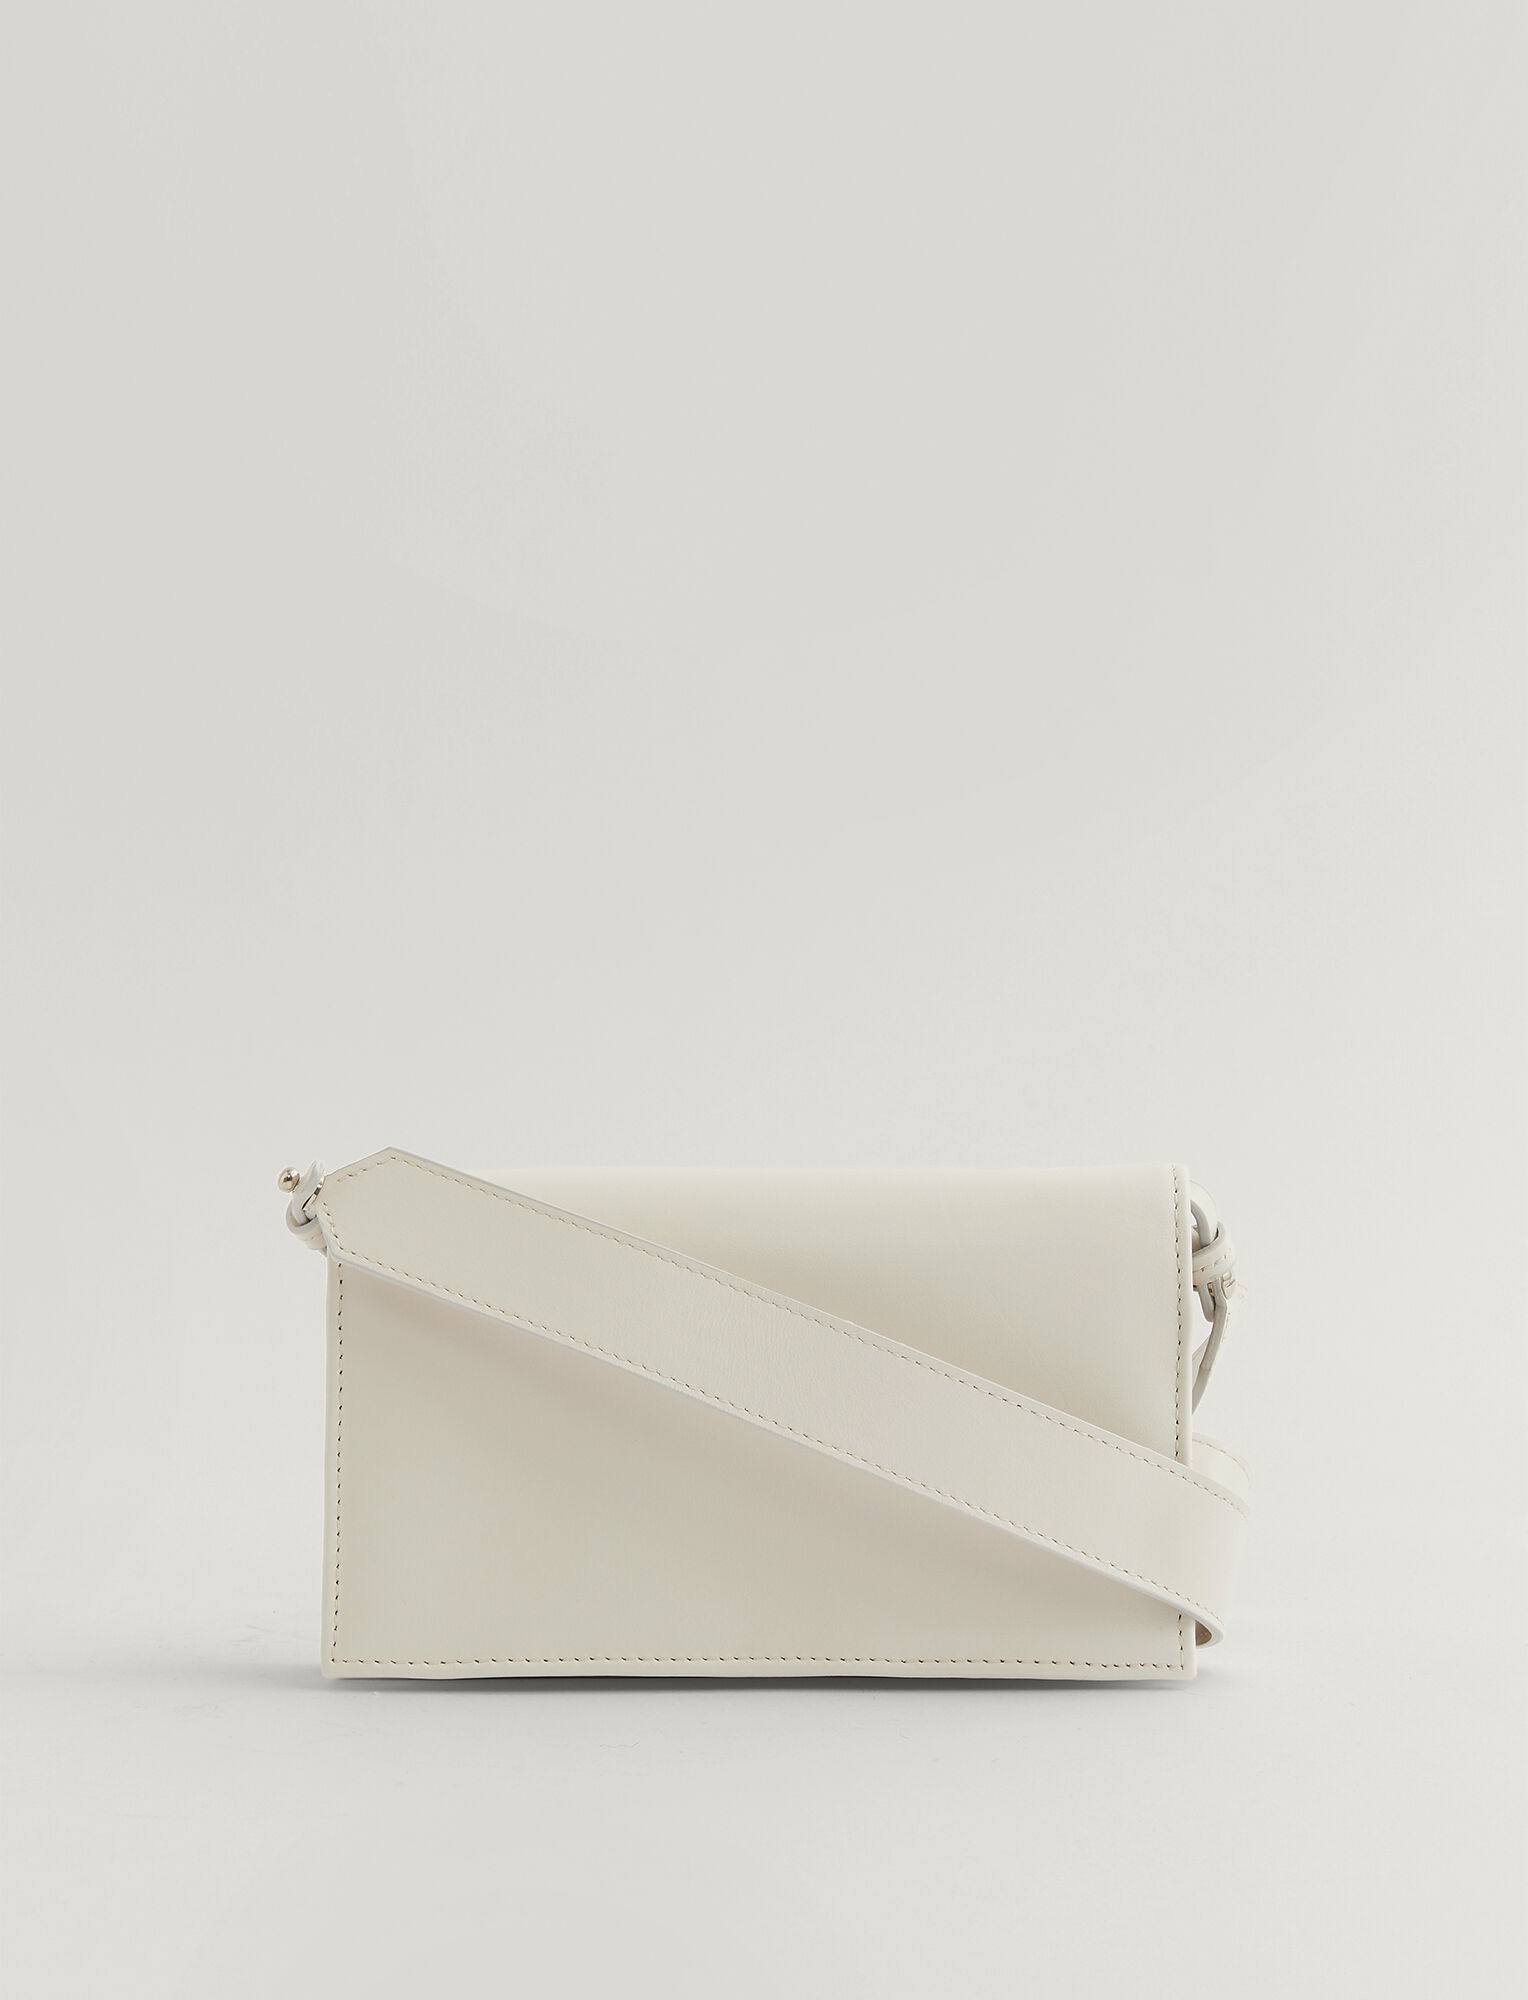 Joseph, Leather Shoulder Wallet, in OFF WHITE